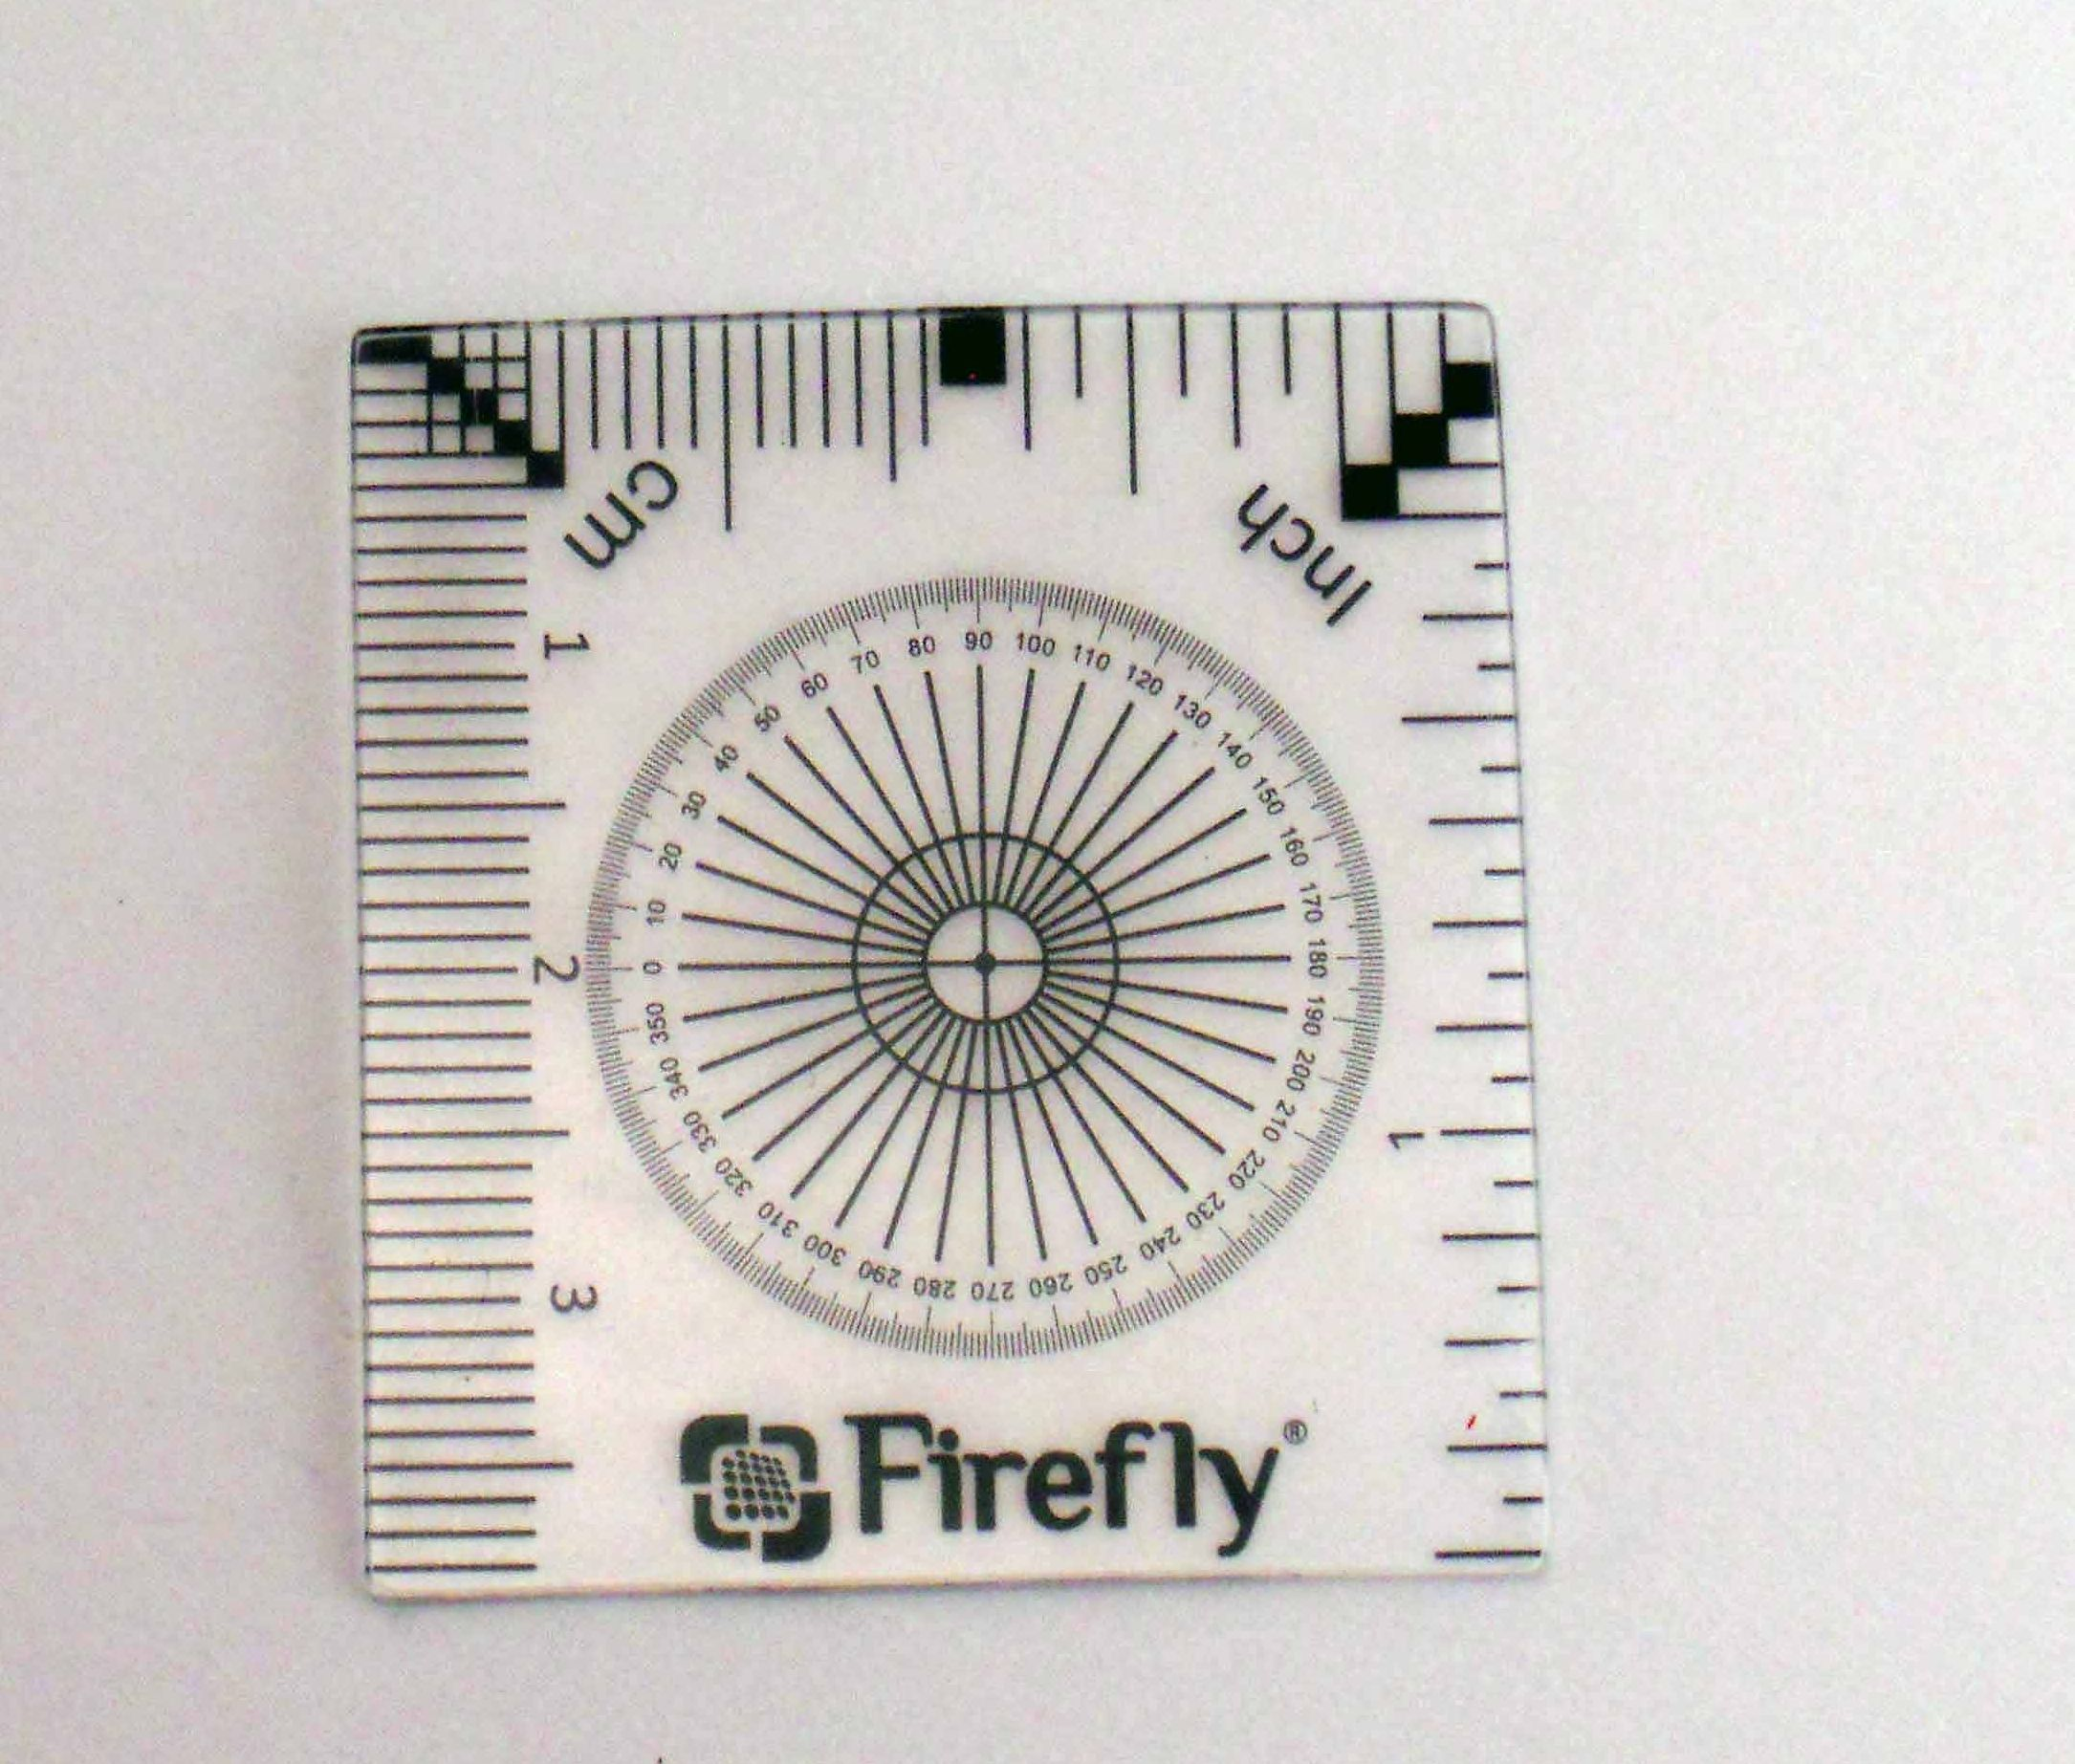 Calibration ruler - Accessoires Microscopes USB Firefly